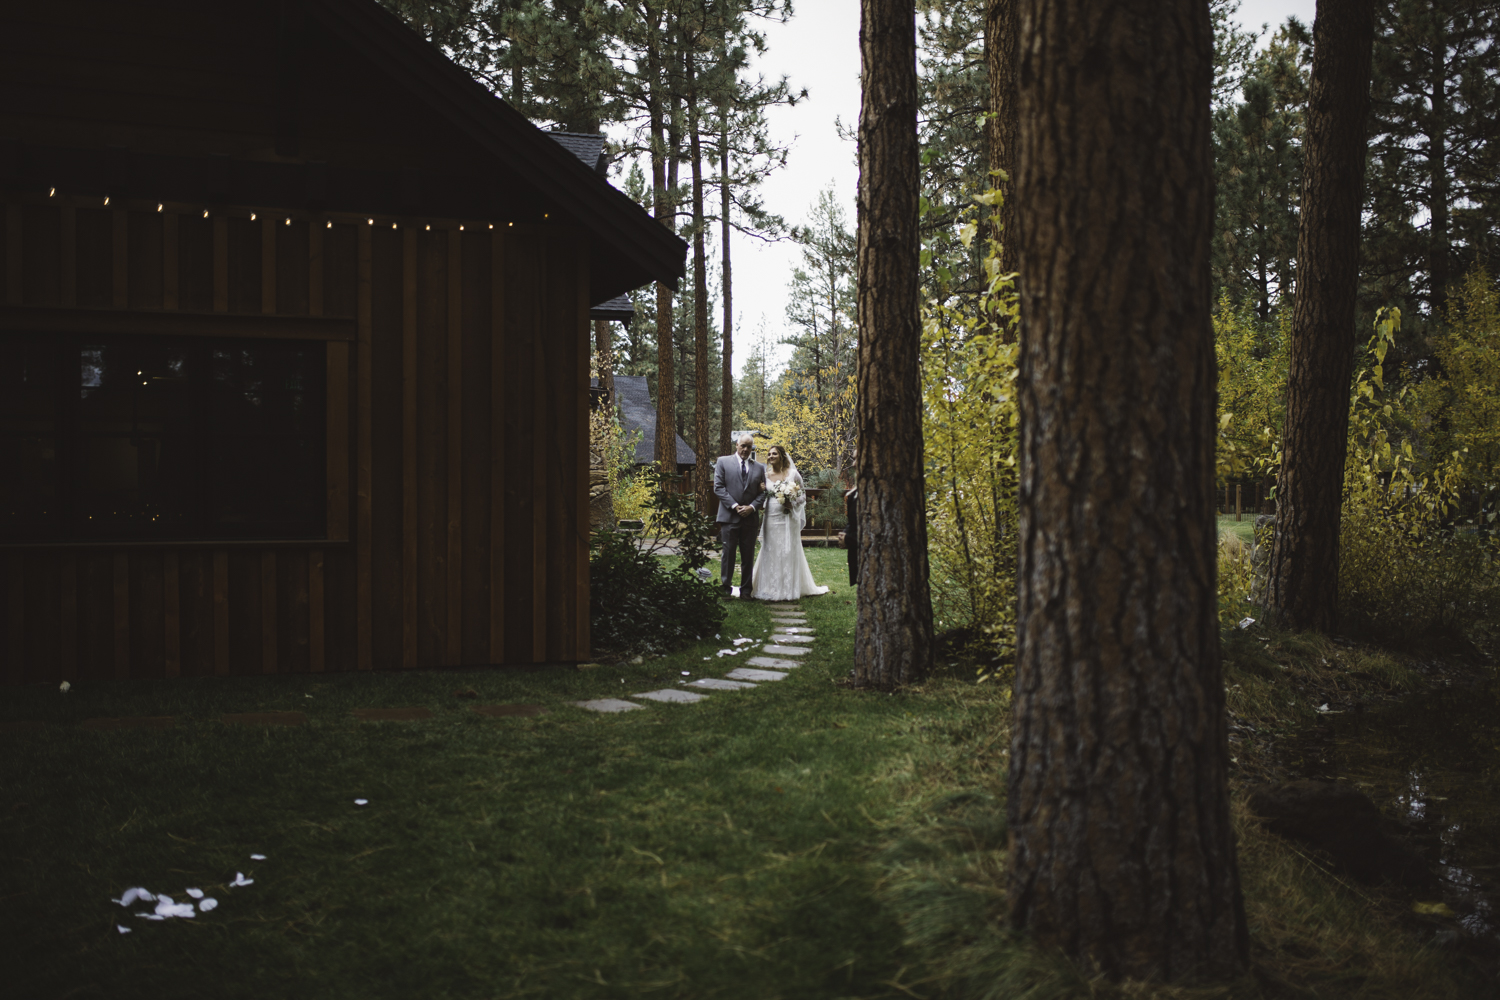 sarah-danielle-photography-intimate-portland-wedding-80.jpg